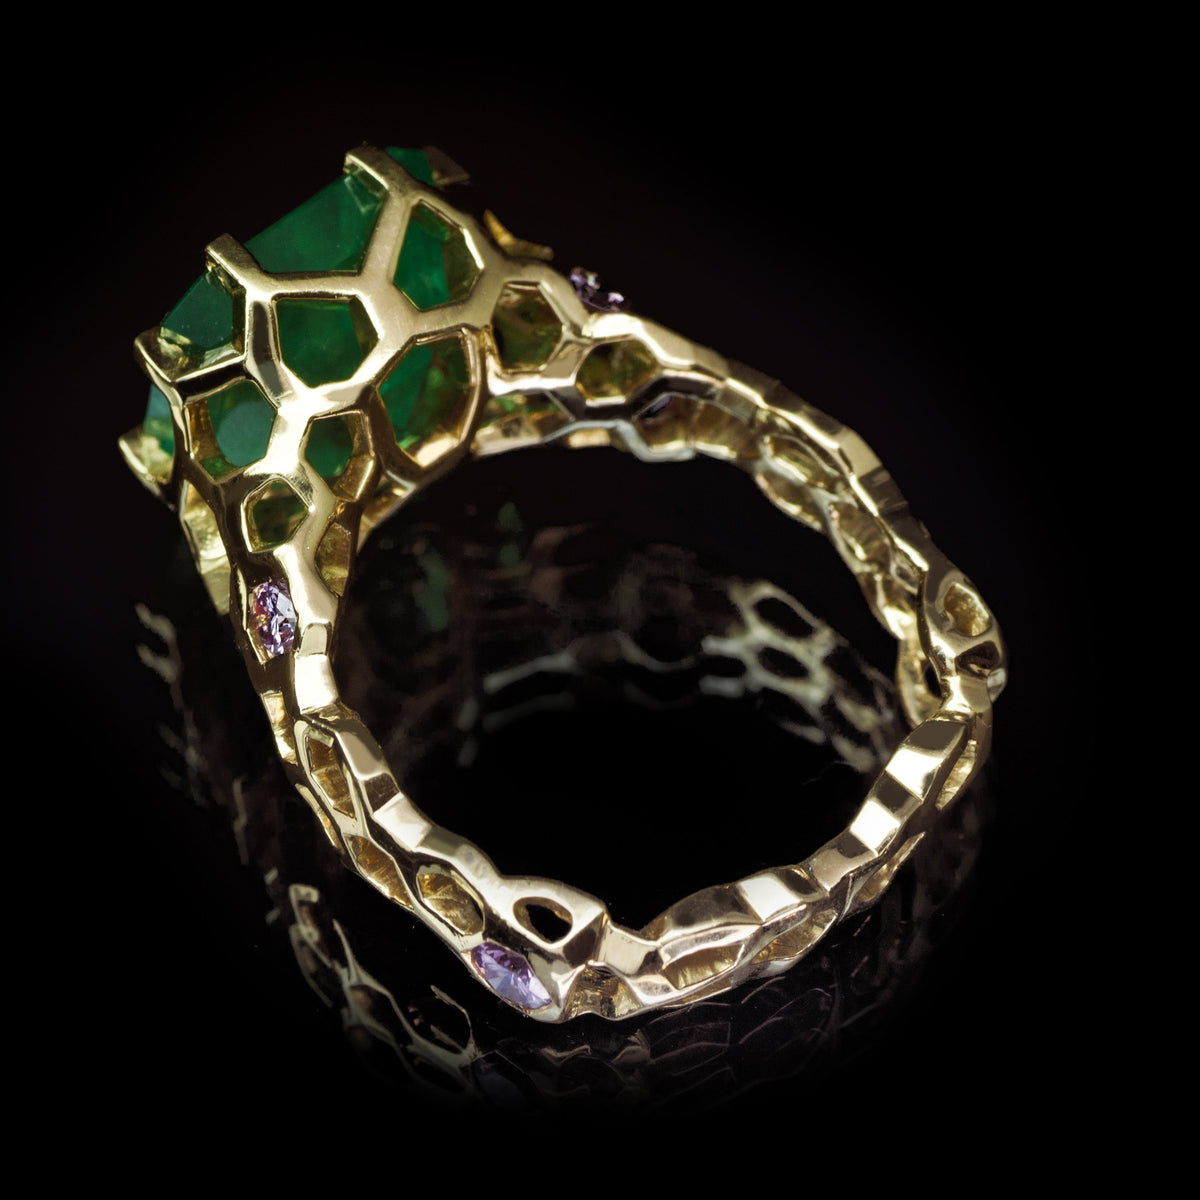 Guy and Max Digital Nature Octagonal Emerald and Gold Cellular Cocktail Ring, quarter view showing structure of ring